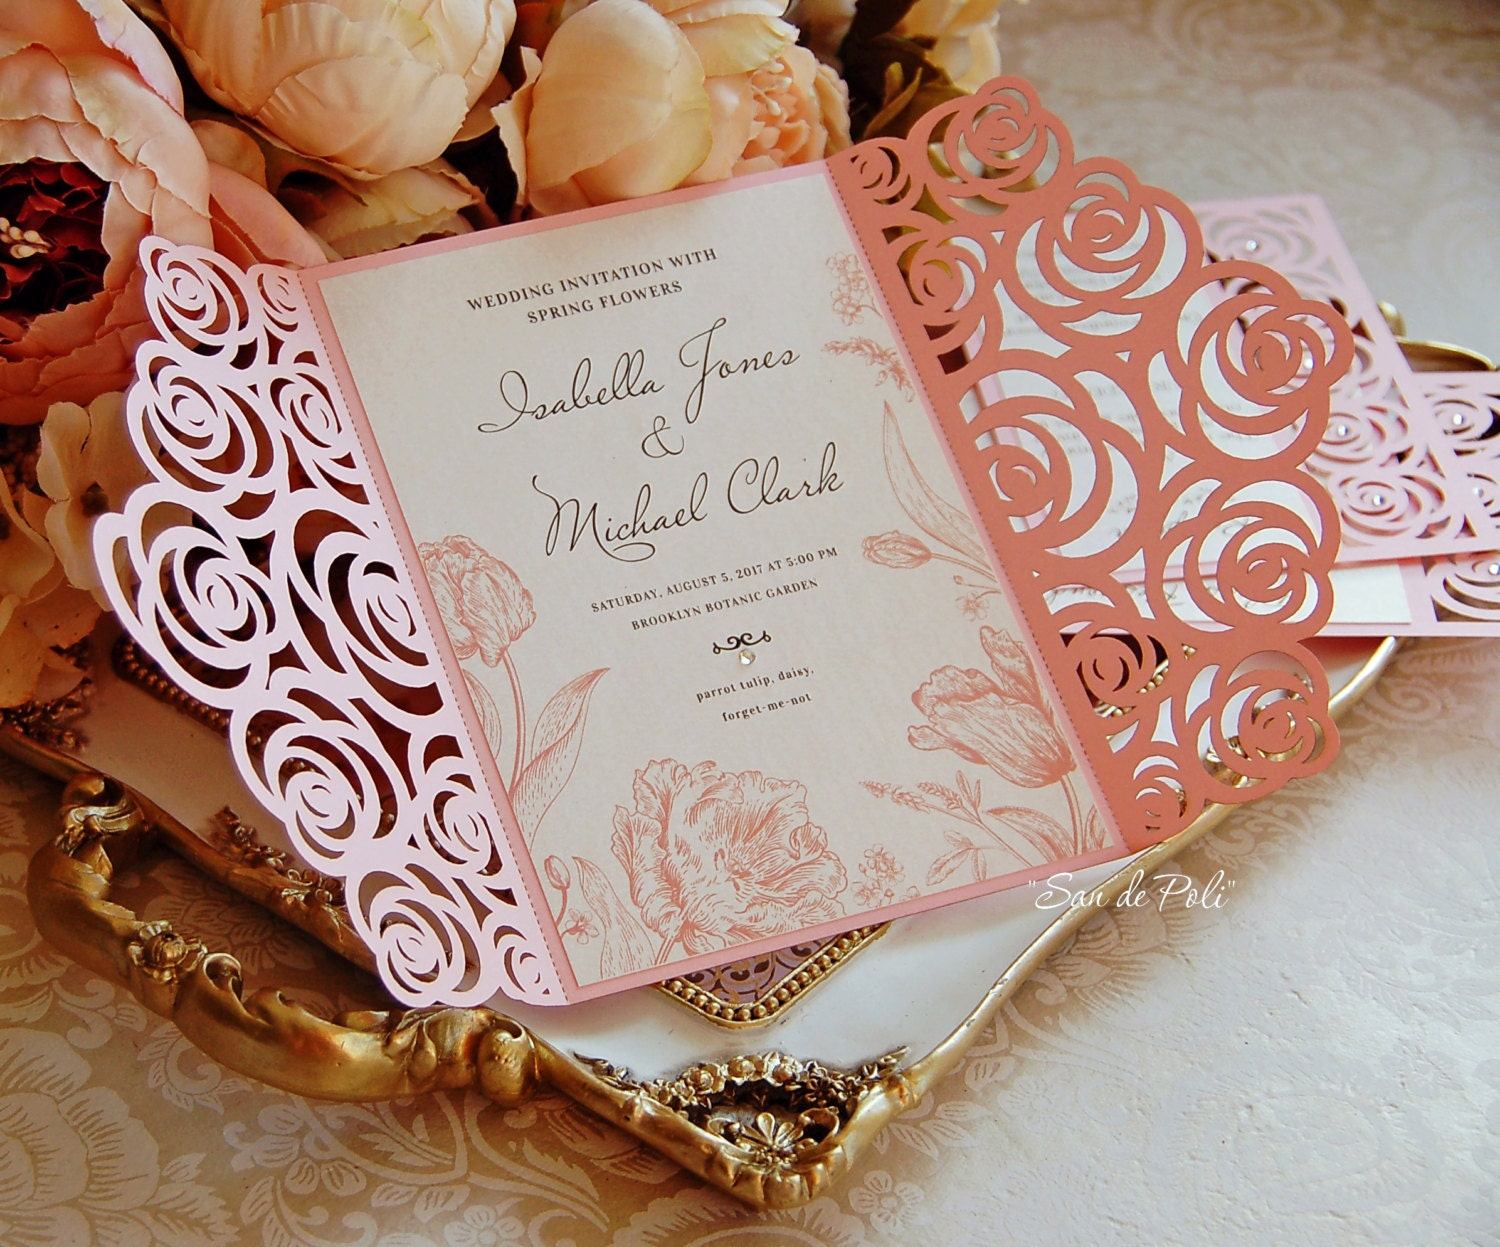 how to make wedding invitations using cricut. using a few simple, Wedding invitations